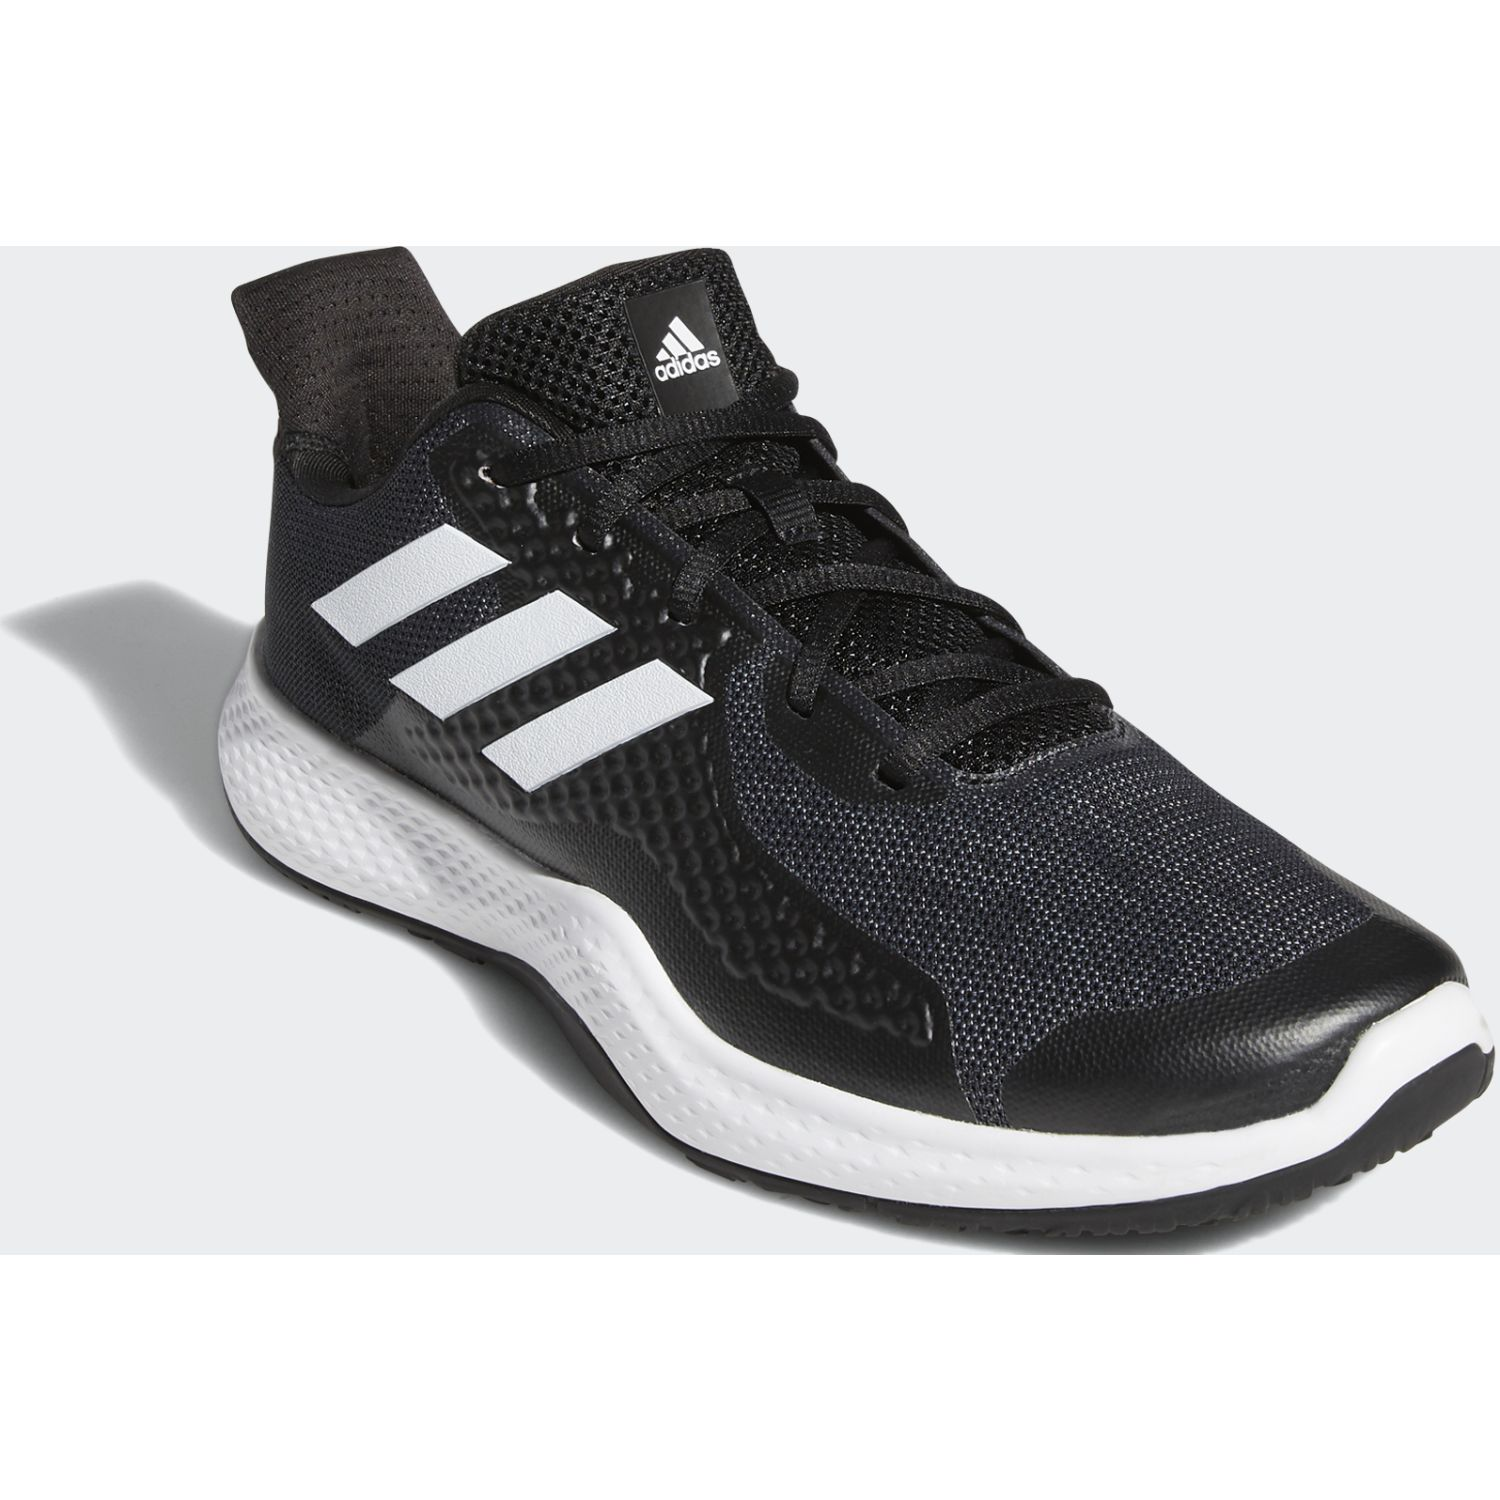 Adidas Fitbounce Trainer M Negro / blanco Hombres